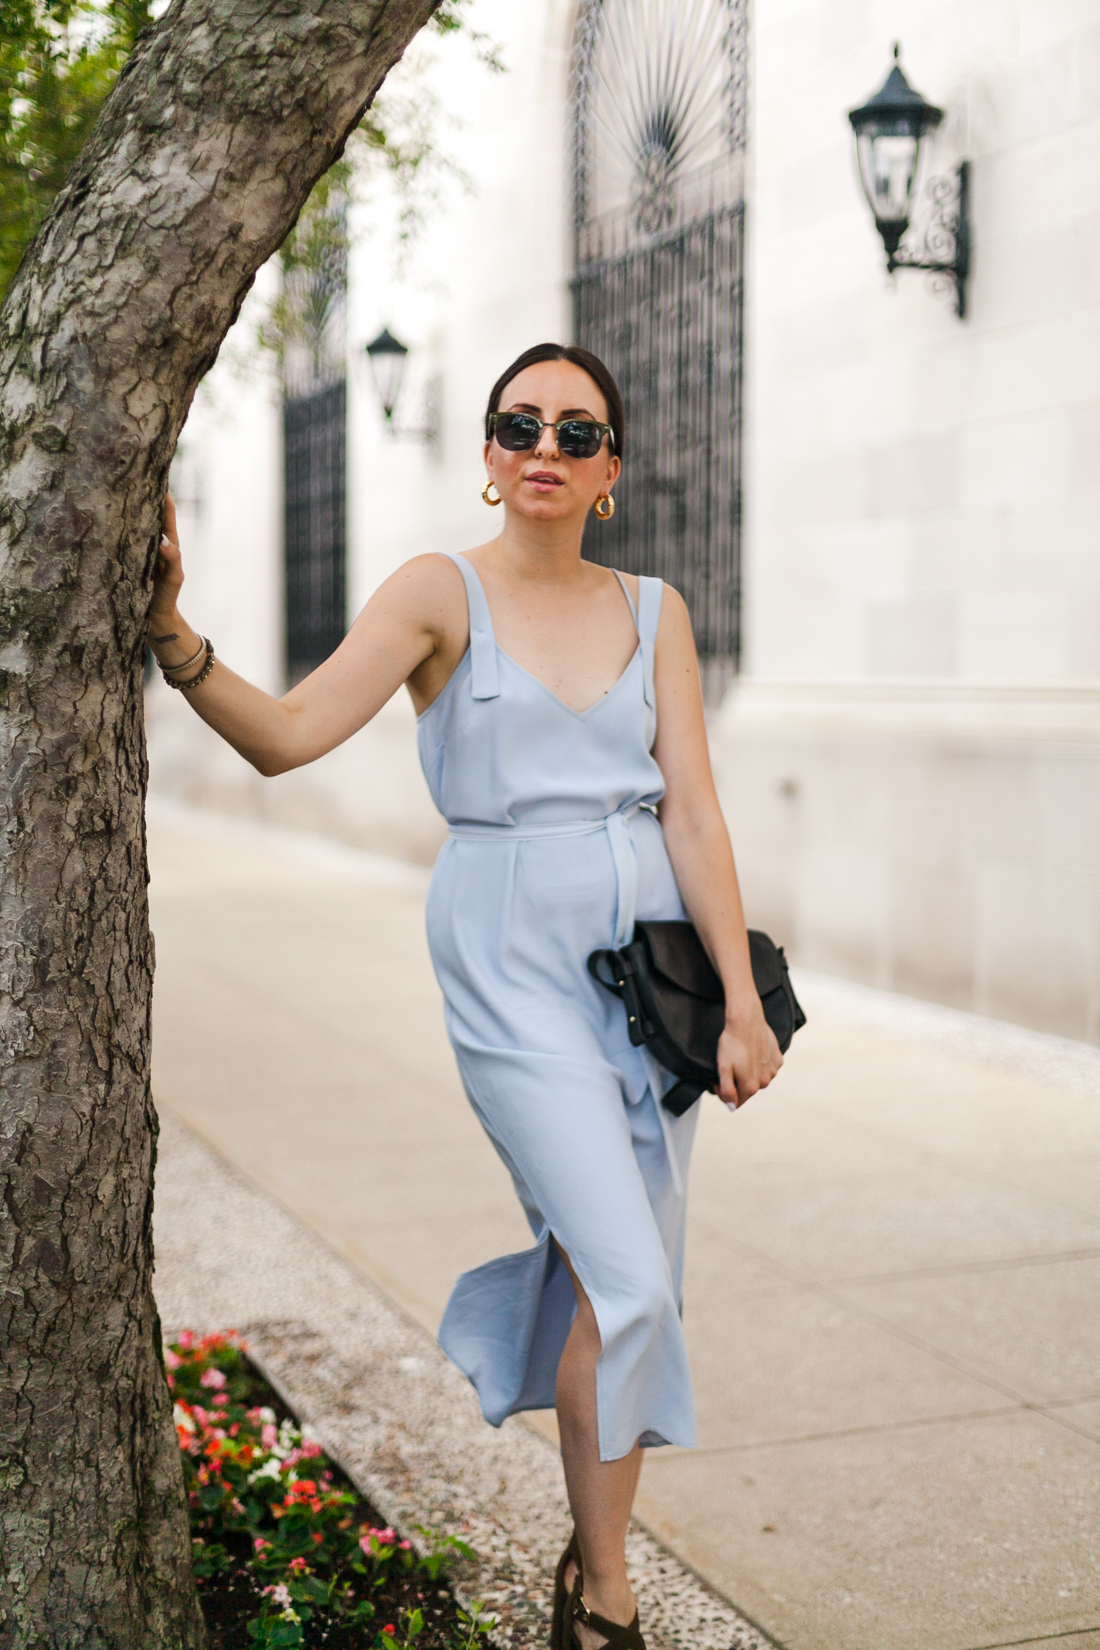 Yana Frigelis of NoMad Luxuries wearing a powder blue topshop dress and olive green suede sandals to an end of summer wedding